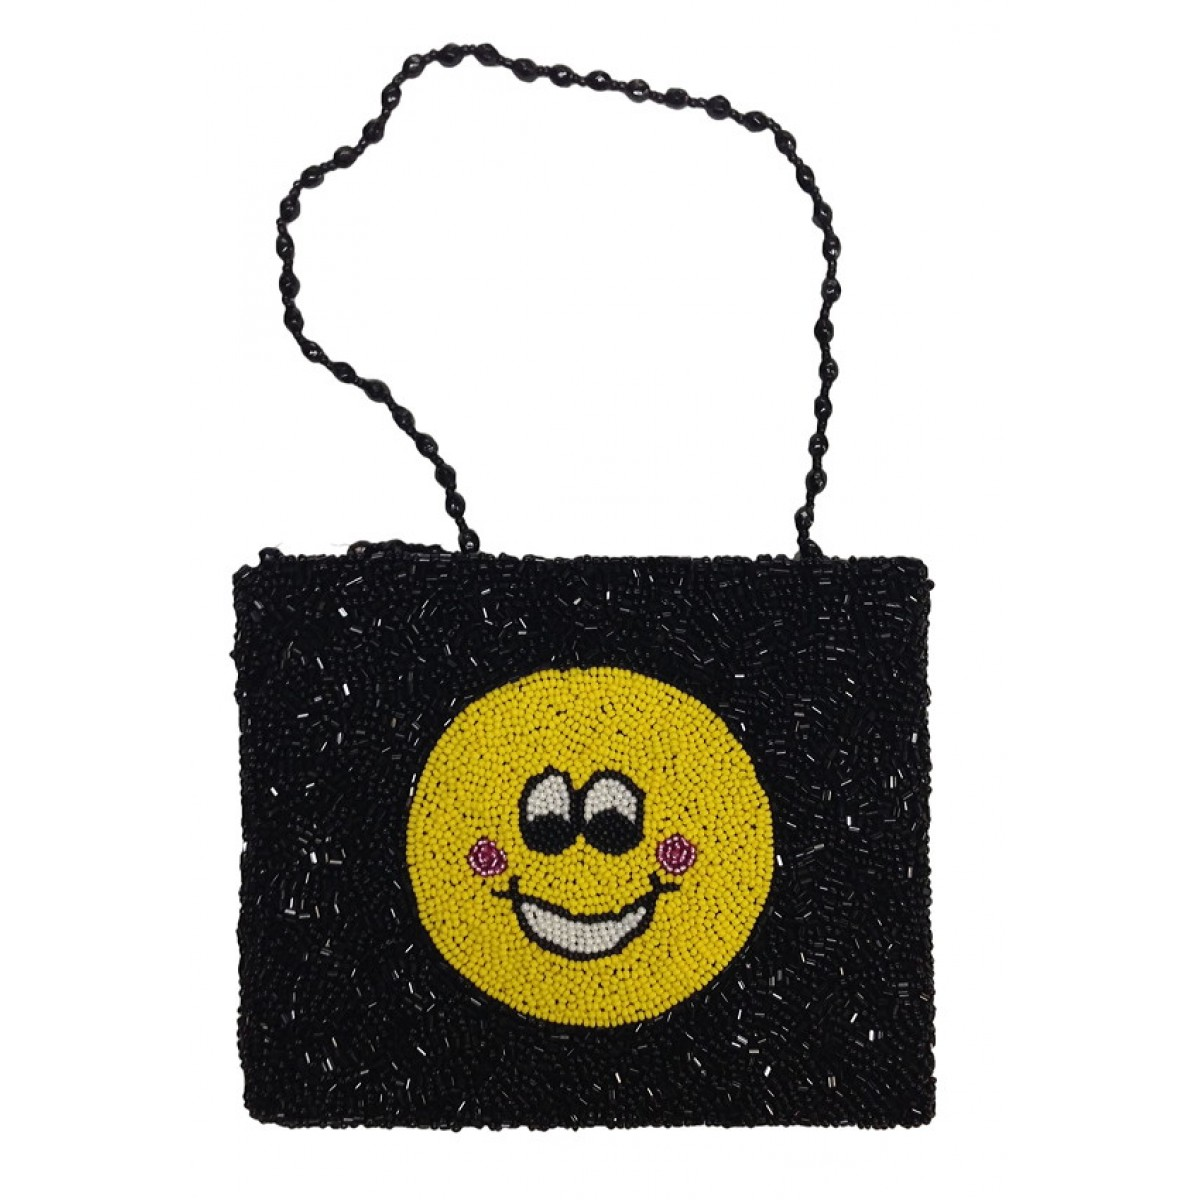 Cross Body Pouch with Smiley Face Motif